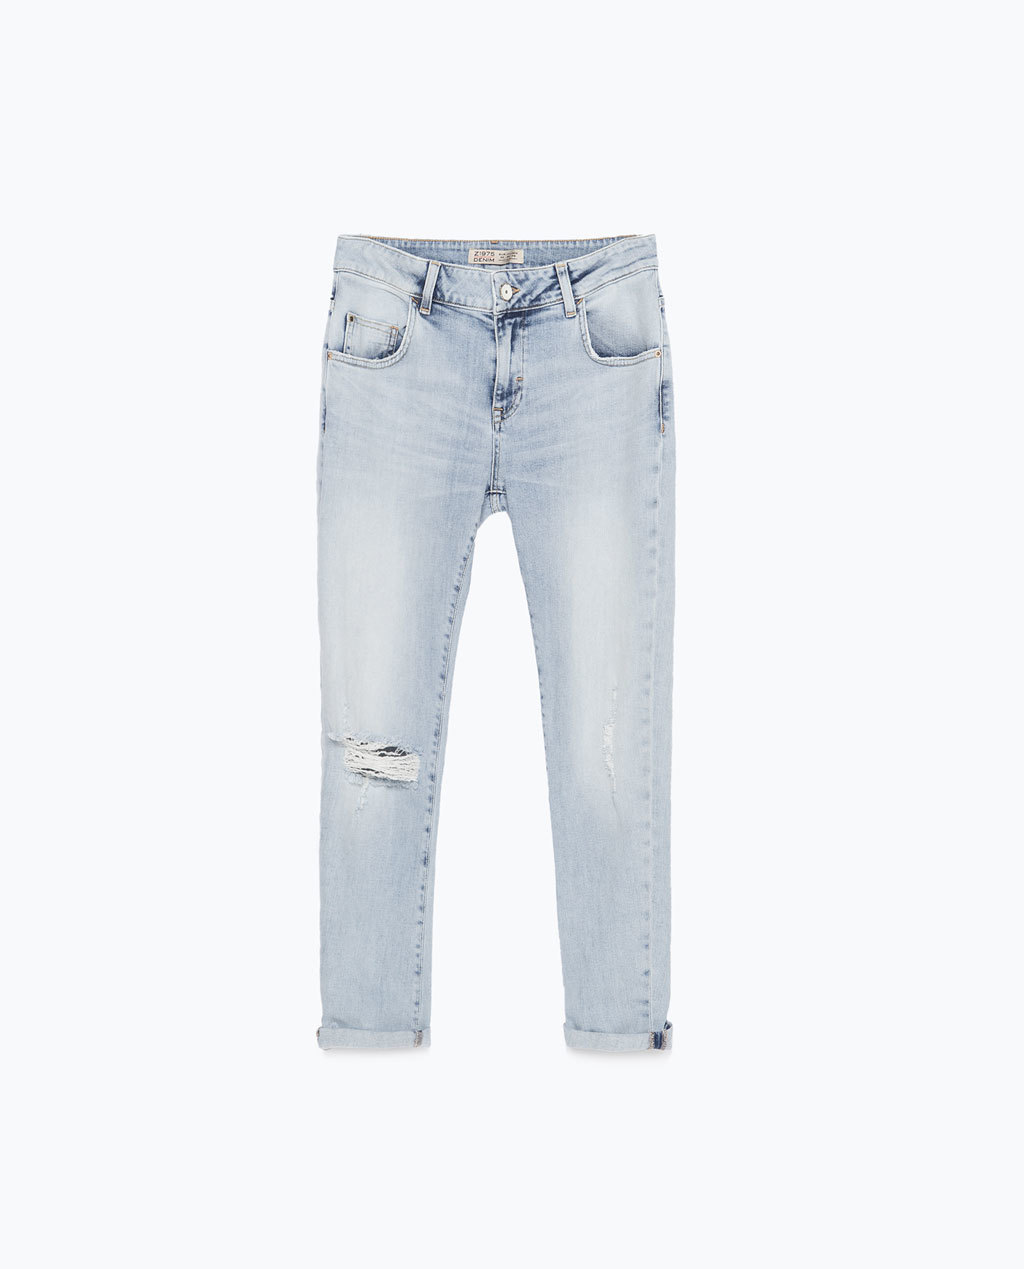 Boyfriend Jeans - style: boyfriend; pattern: plain; pocket detail: traditional 5 pocket; waist: mid/regular rise; predominant colour: denim; occasions: casual; length: ankle length; jeans detail: washed/faded, rips; texture group: denim; season: s/s 2015; wardrobe: basic